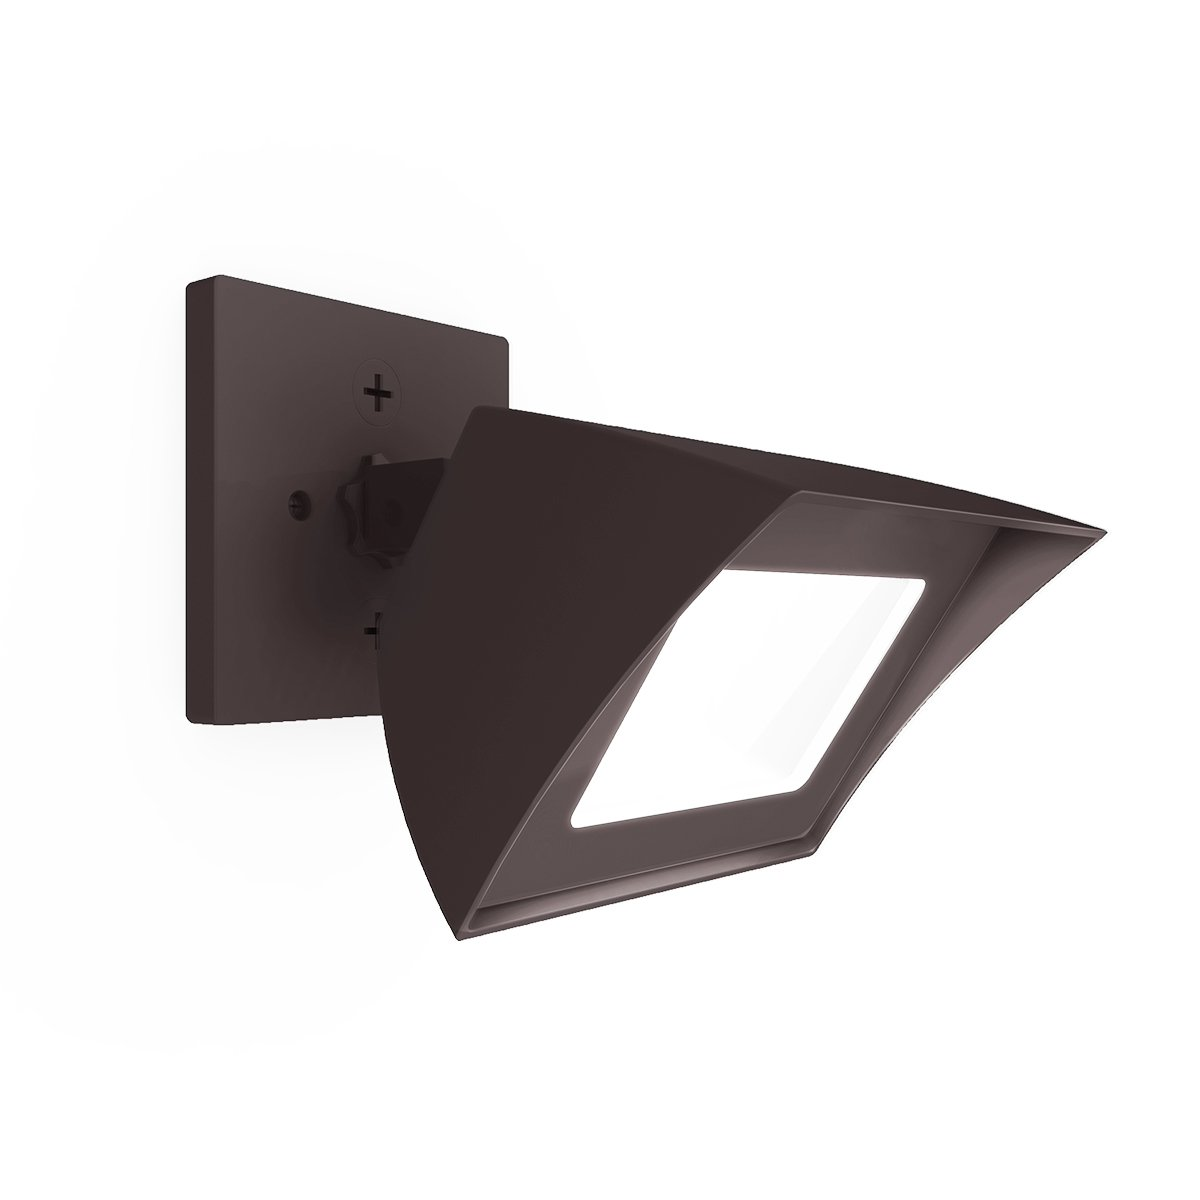 WAC Lighting WP-LED335-30-aBZ Contemporary Endurance Flood Light Outdoor/Indoor Wall Pack